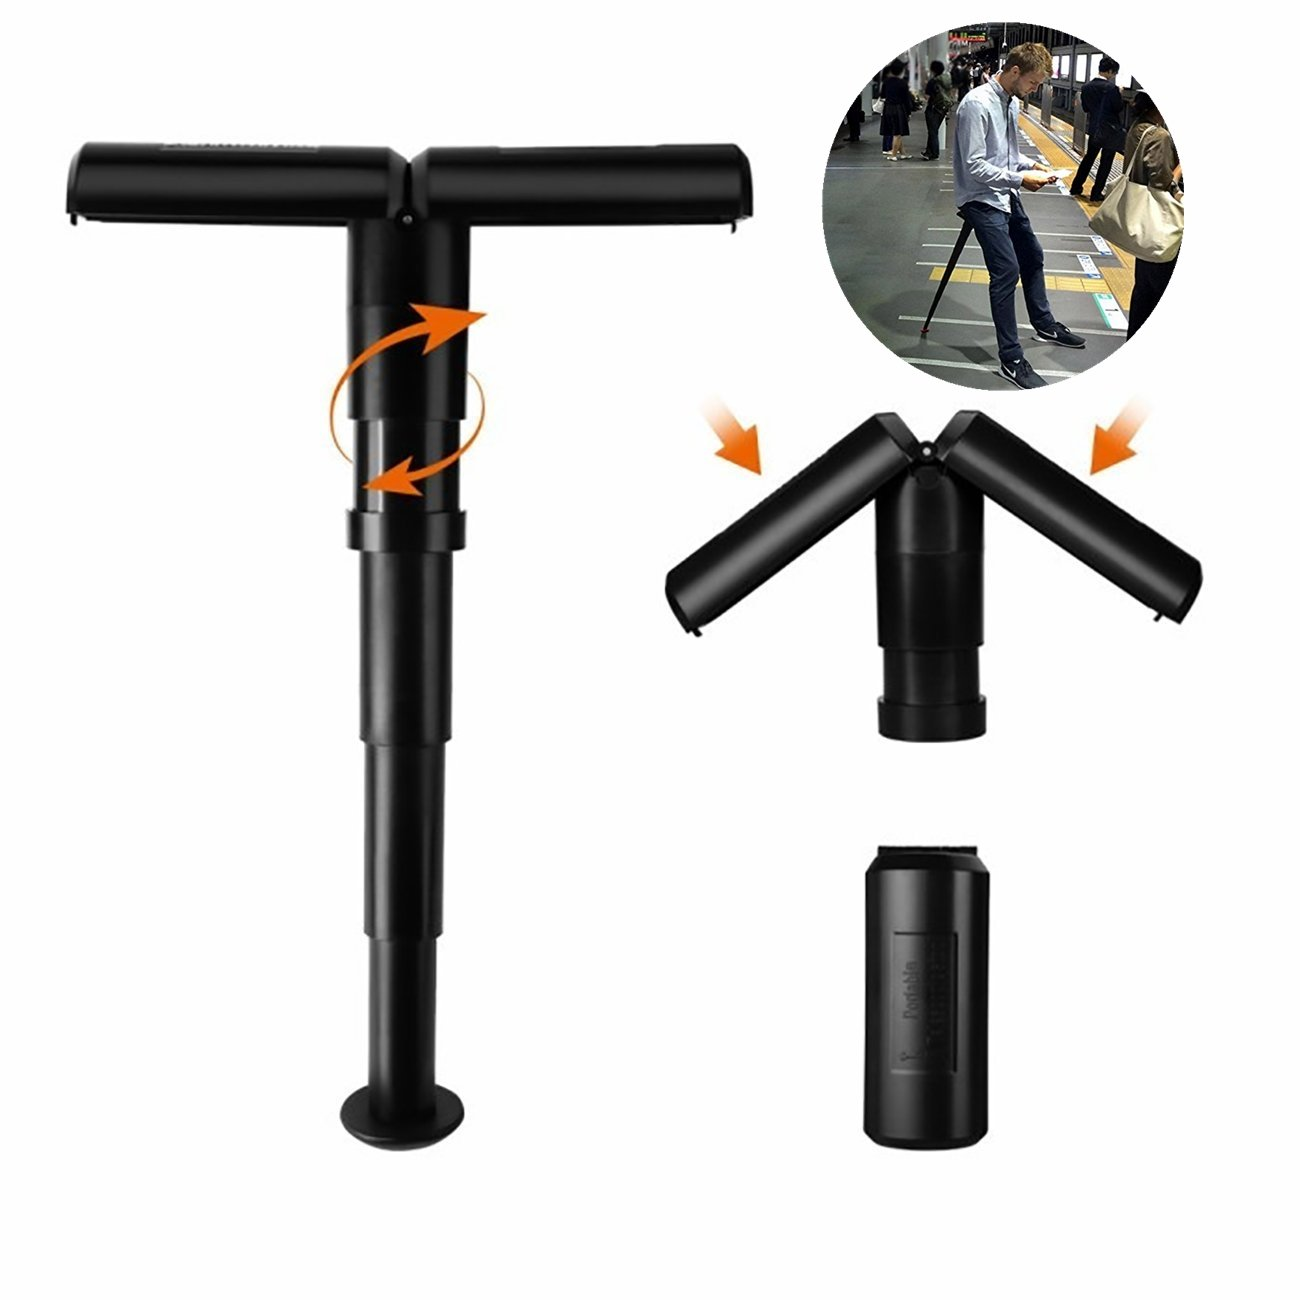 PJ Portable Seat - Stand-up Leaning Seat Compact Mini Folding Lightweight Adjustable Folding Stool for Concerts, Amusement Parks, Travel, Hiking, Camping, and Office.